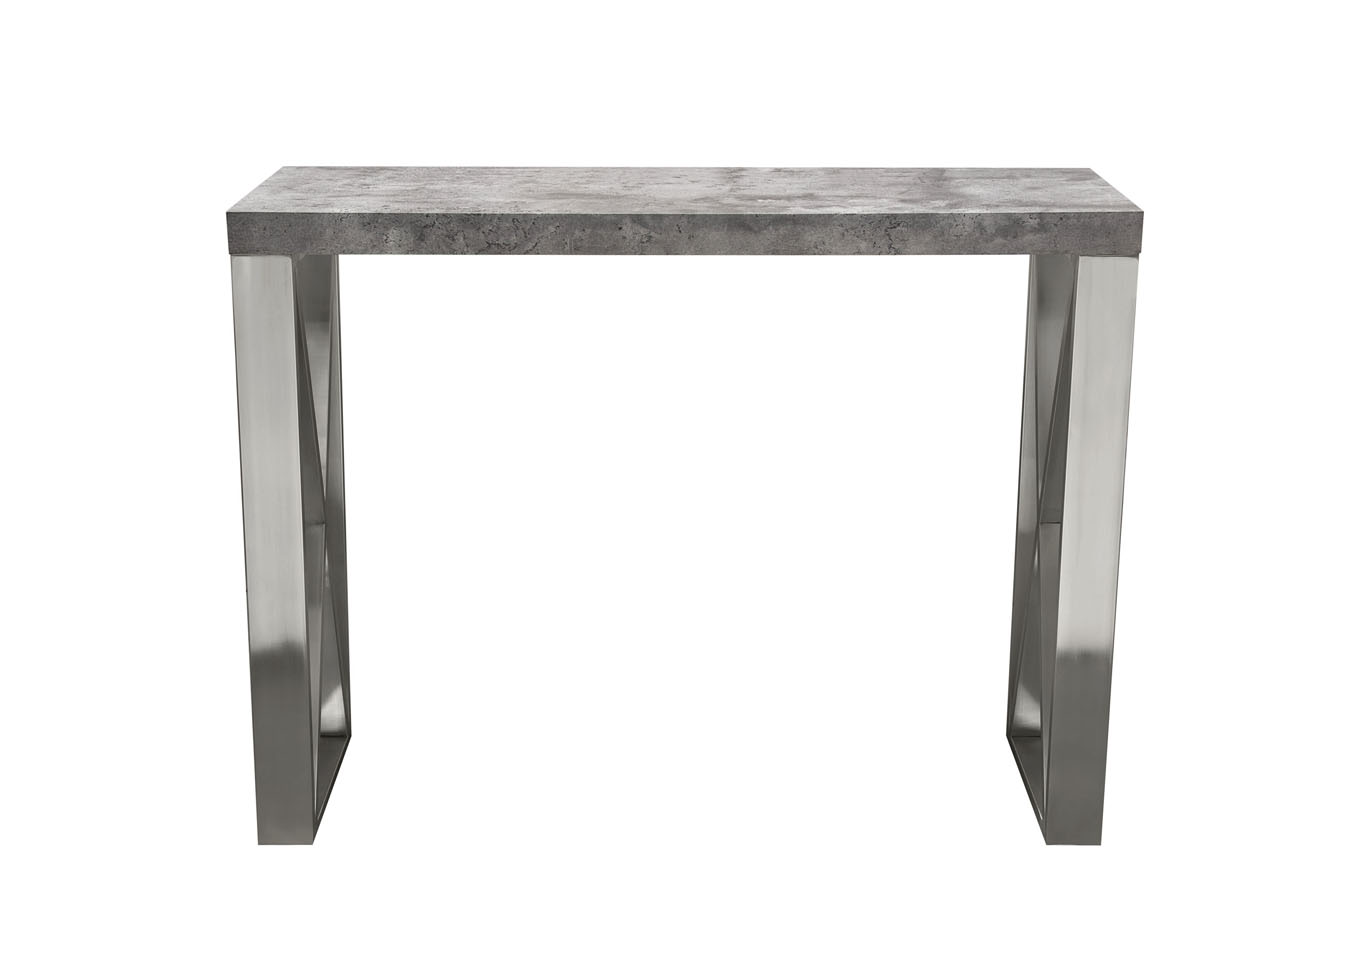 Carrera 3D Faux Concrete Finish Counter Height Table w/Brushed Stainless Steel Legs,Diamond Sofa